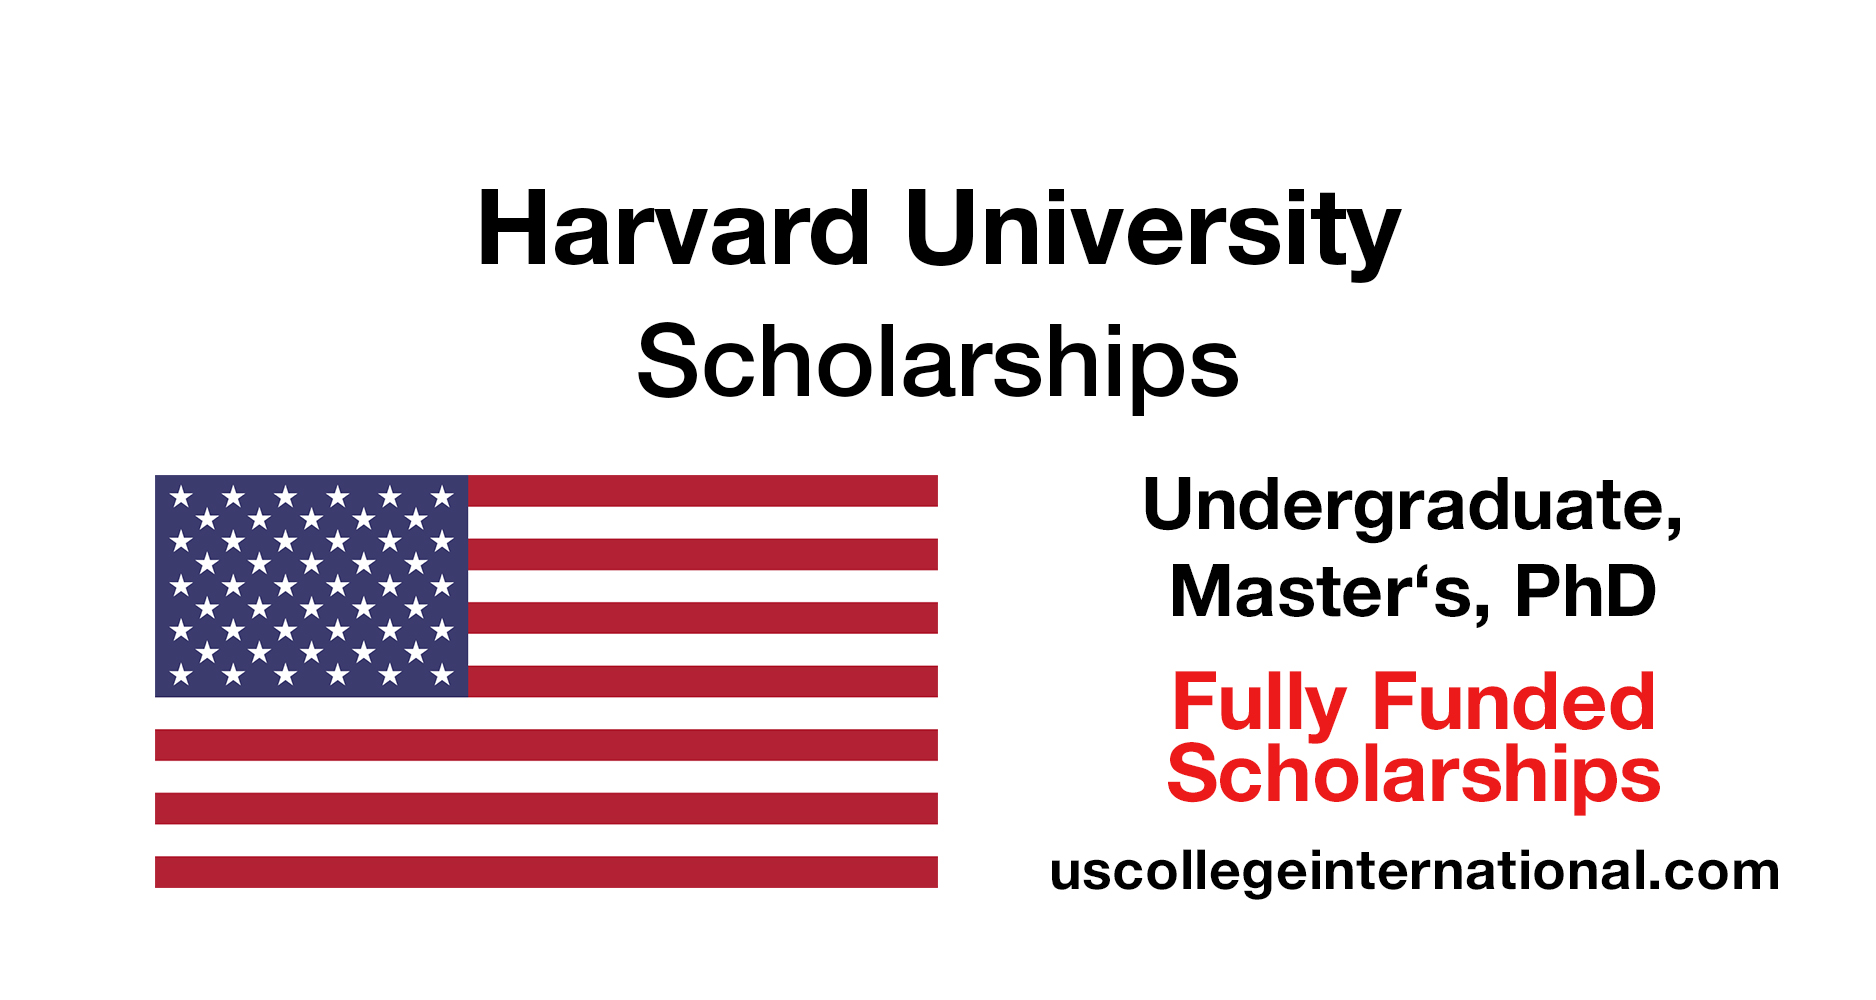 Harvard University Scholarships 2019 (Fully Funded